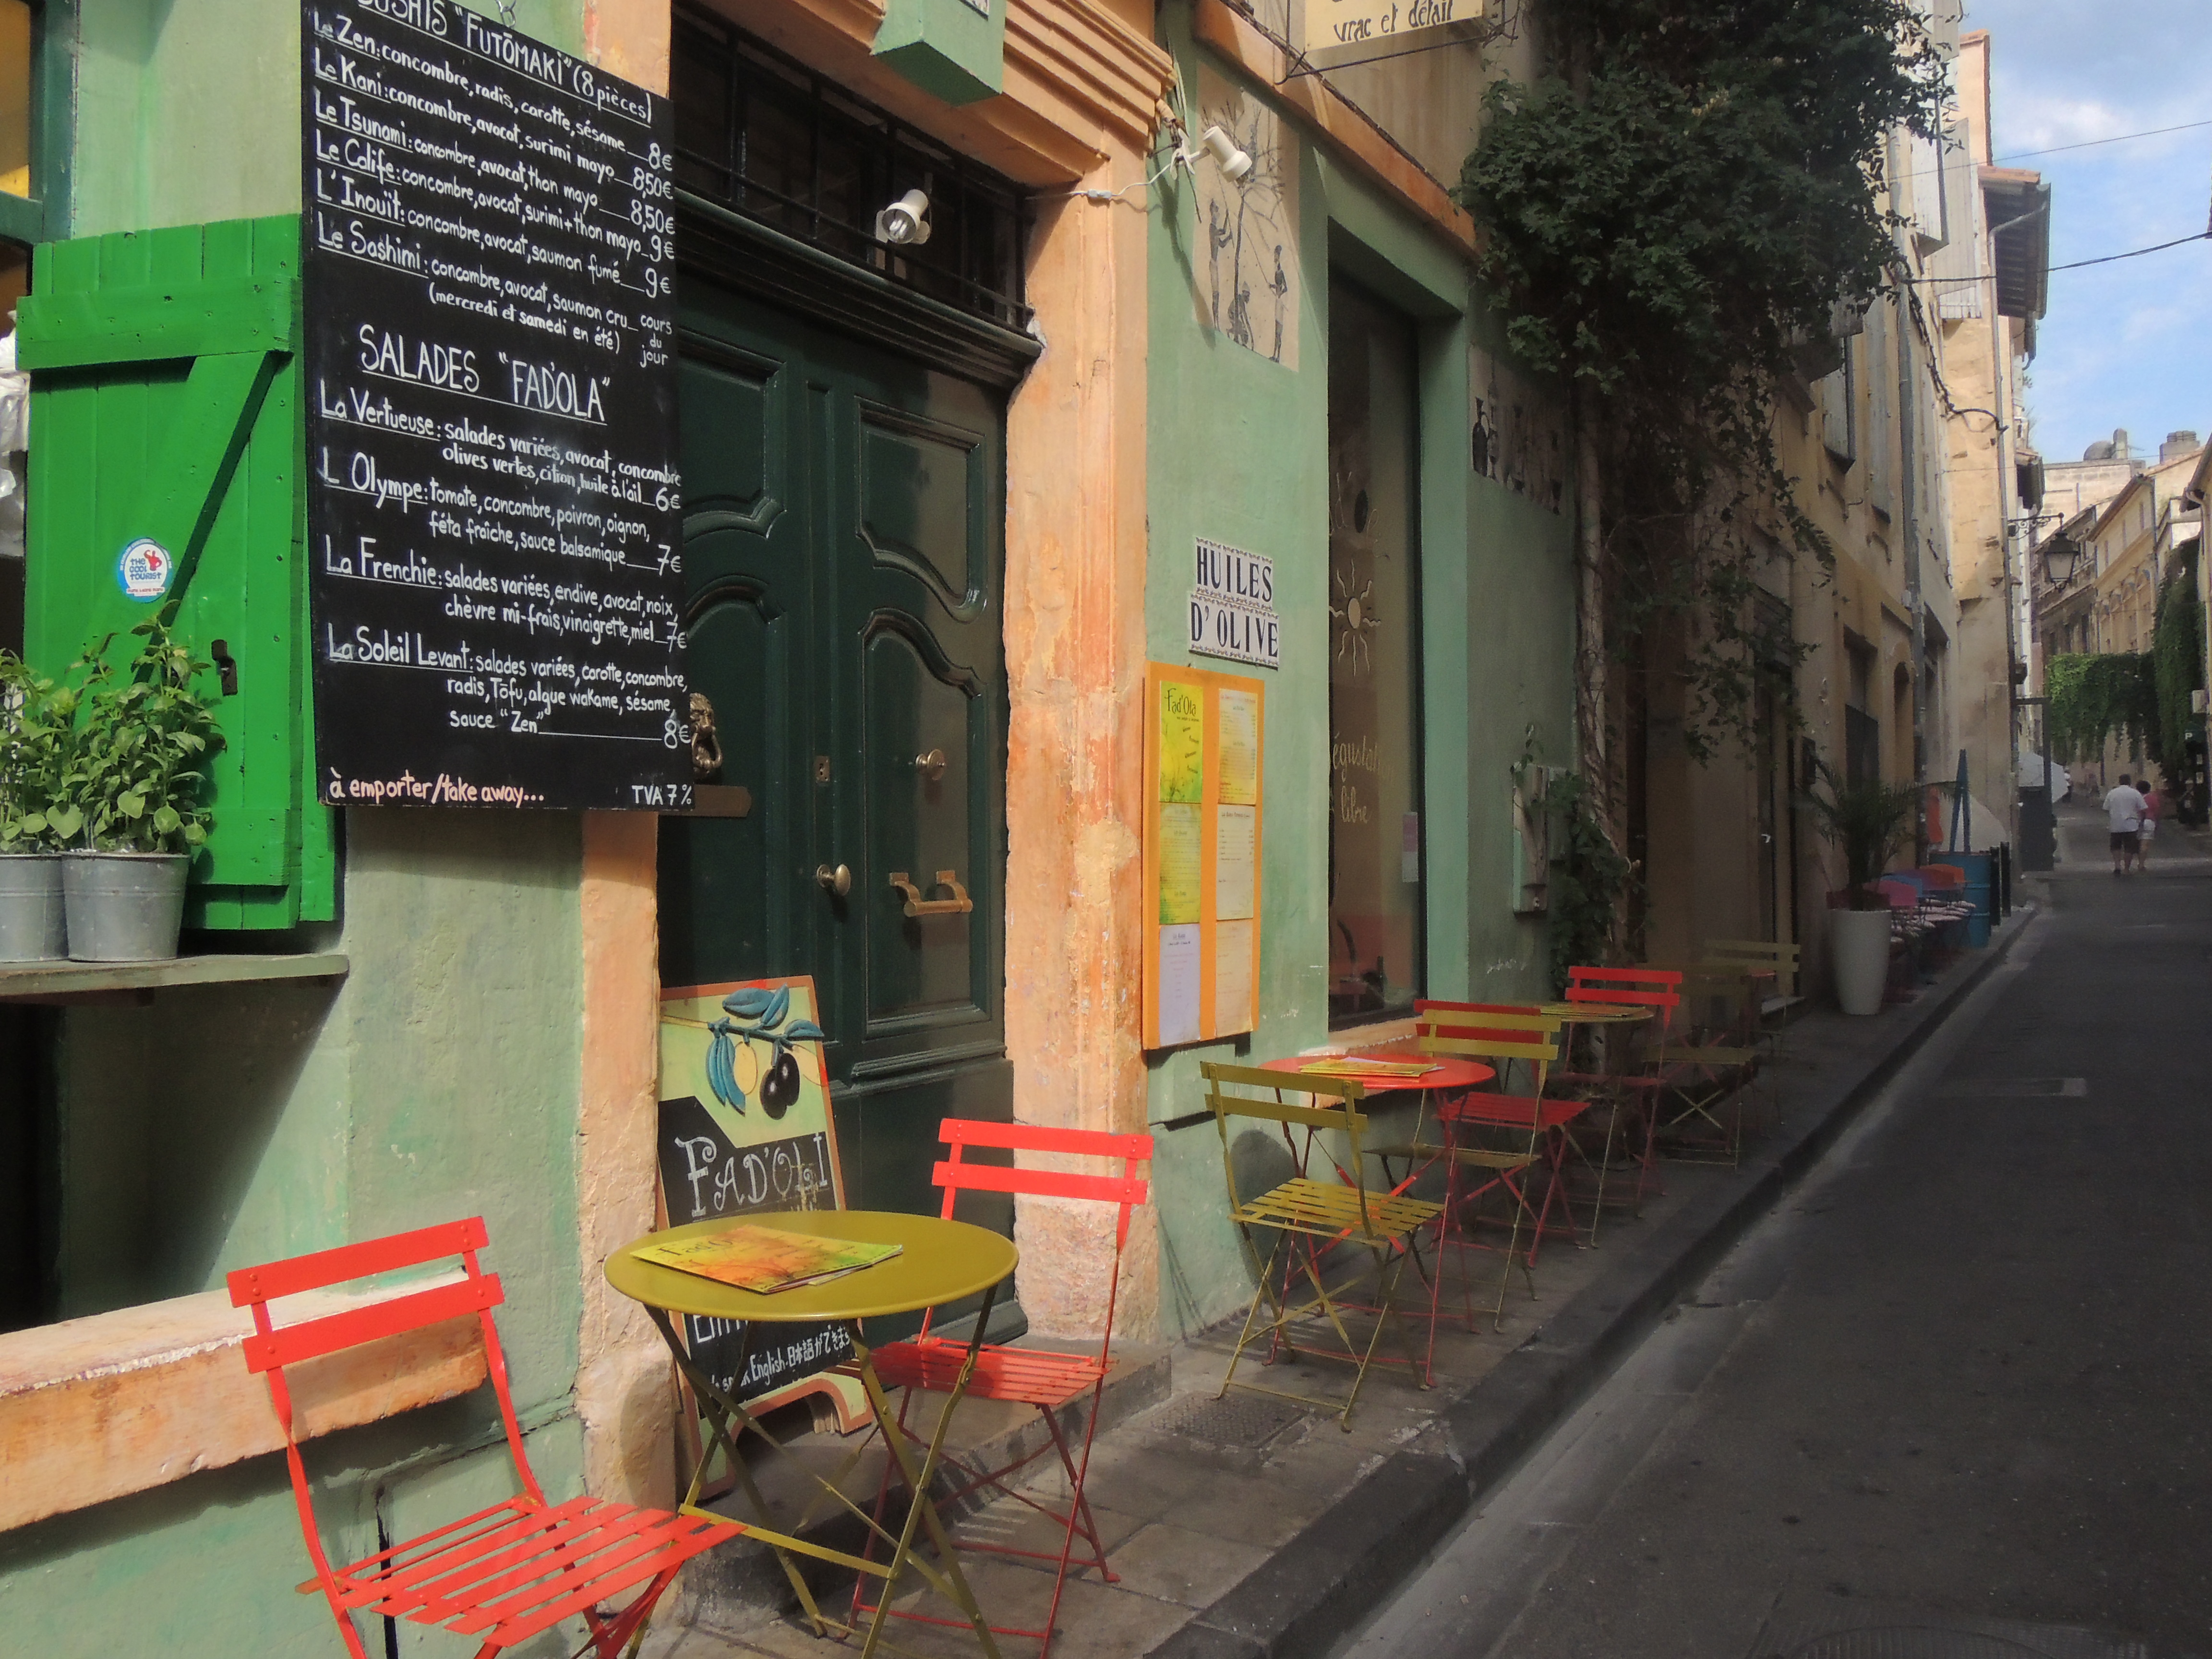 Colourful cafes like this one on the streets of Arles inspired Van Gogh to paint his 'Cafe Terrace at Night'